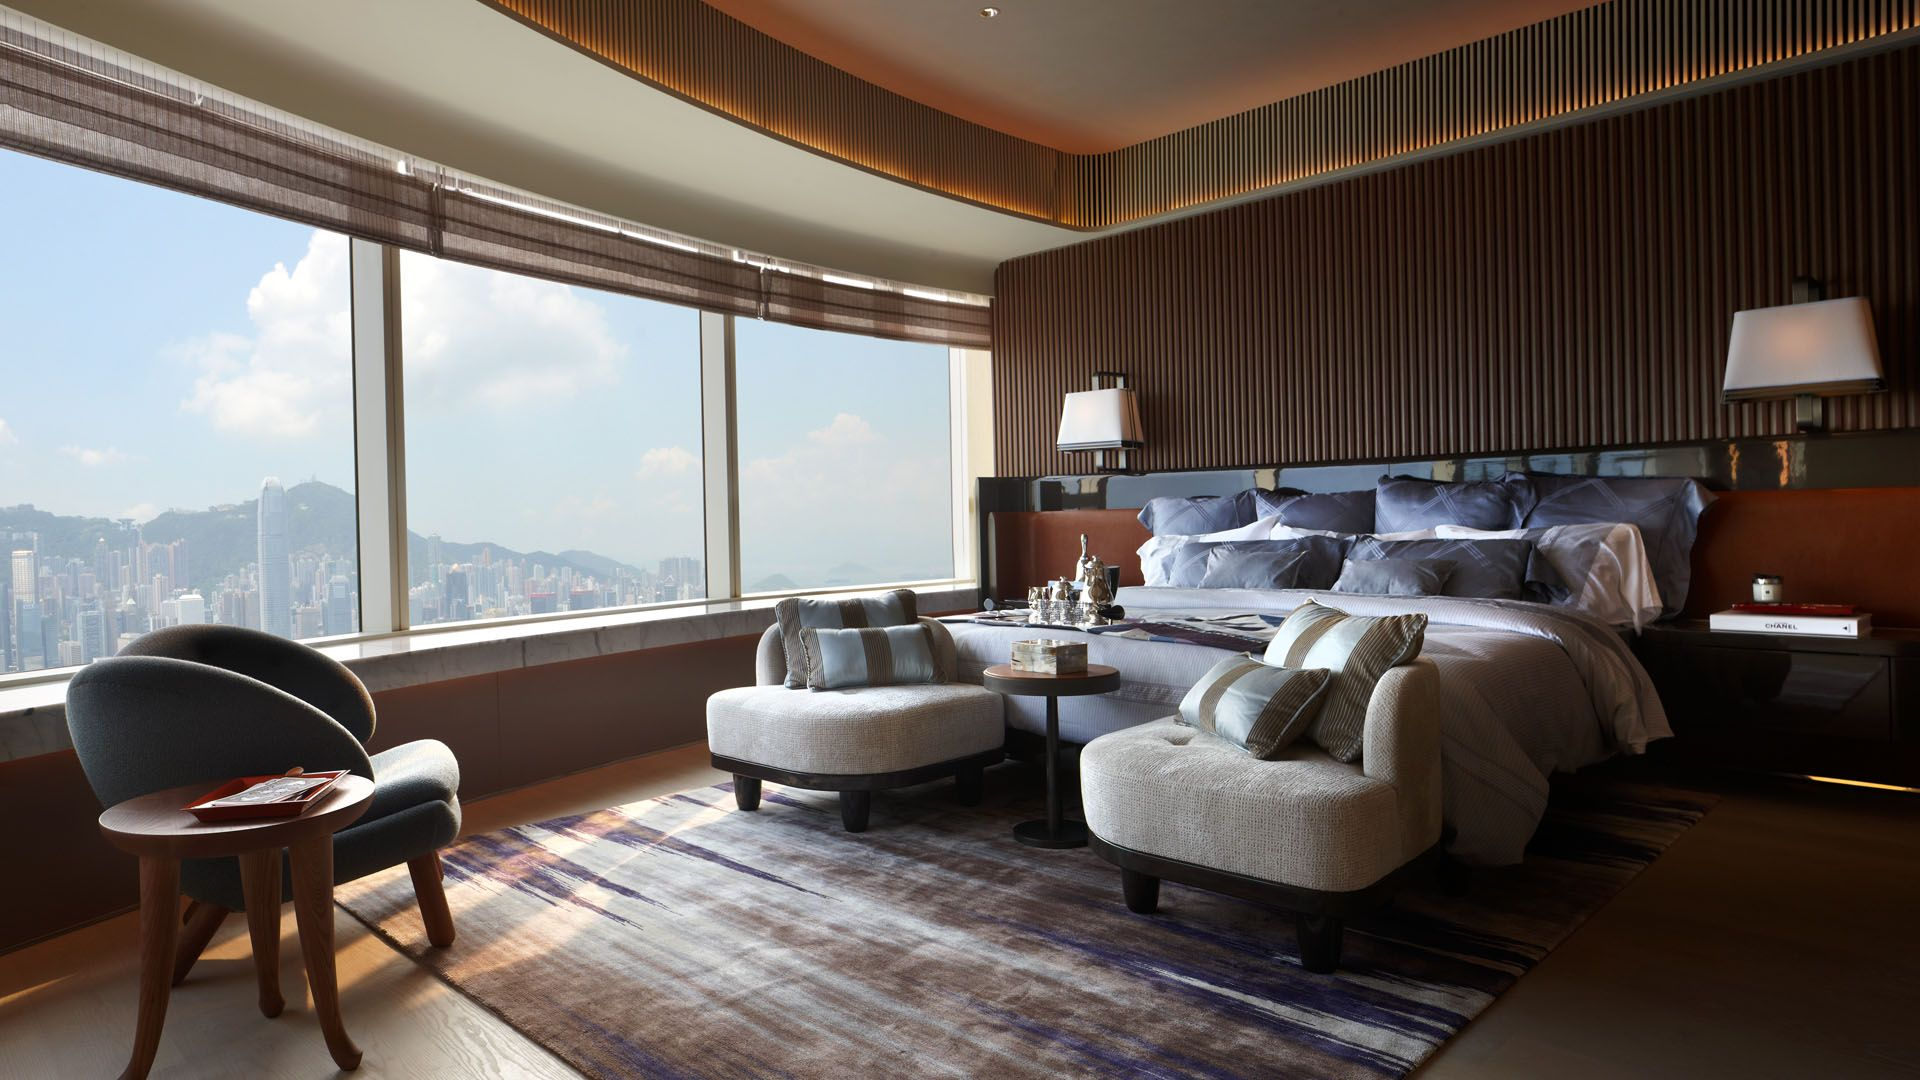 Hong Kong Apartment Interior Abconcept The Masterpiece Duplex Apartment Hong Kong